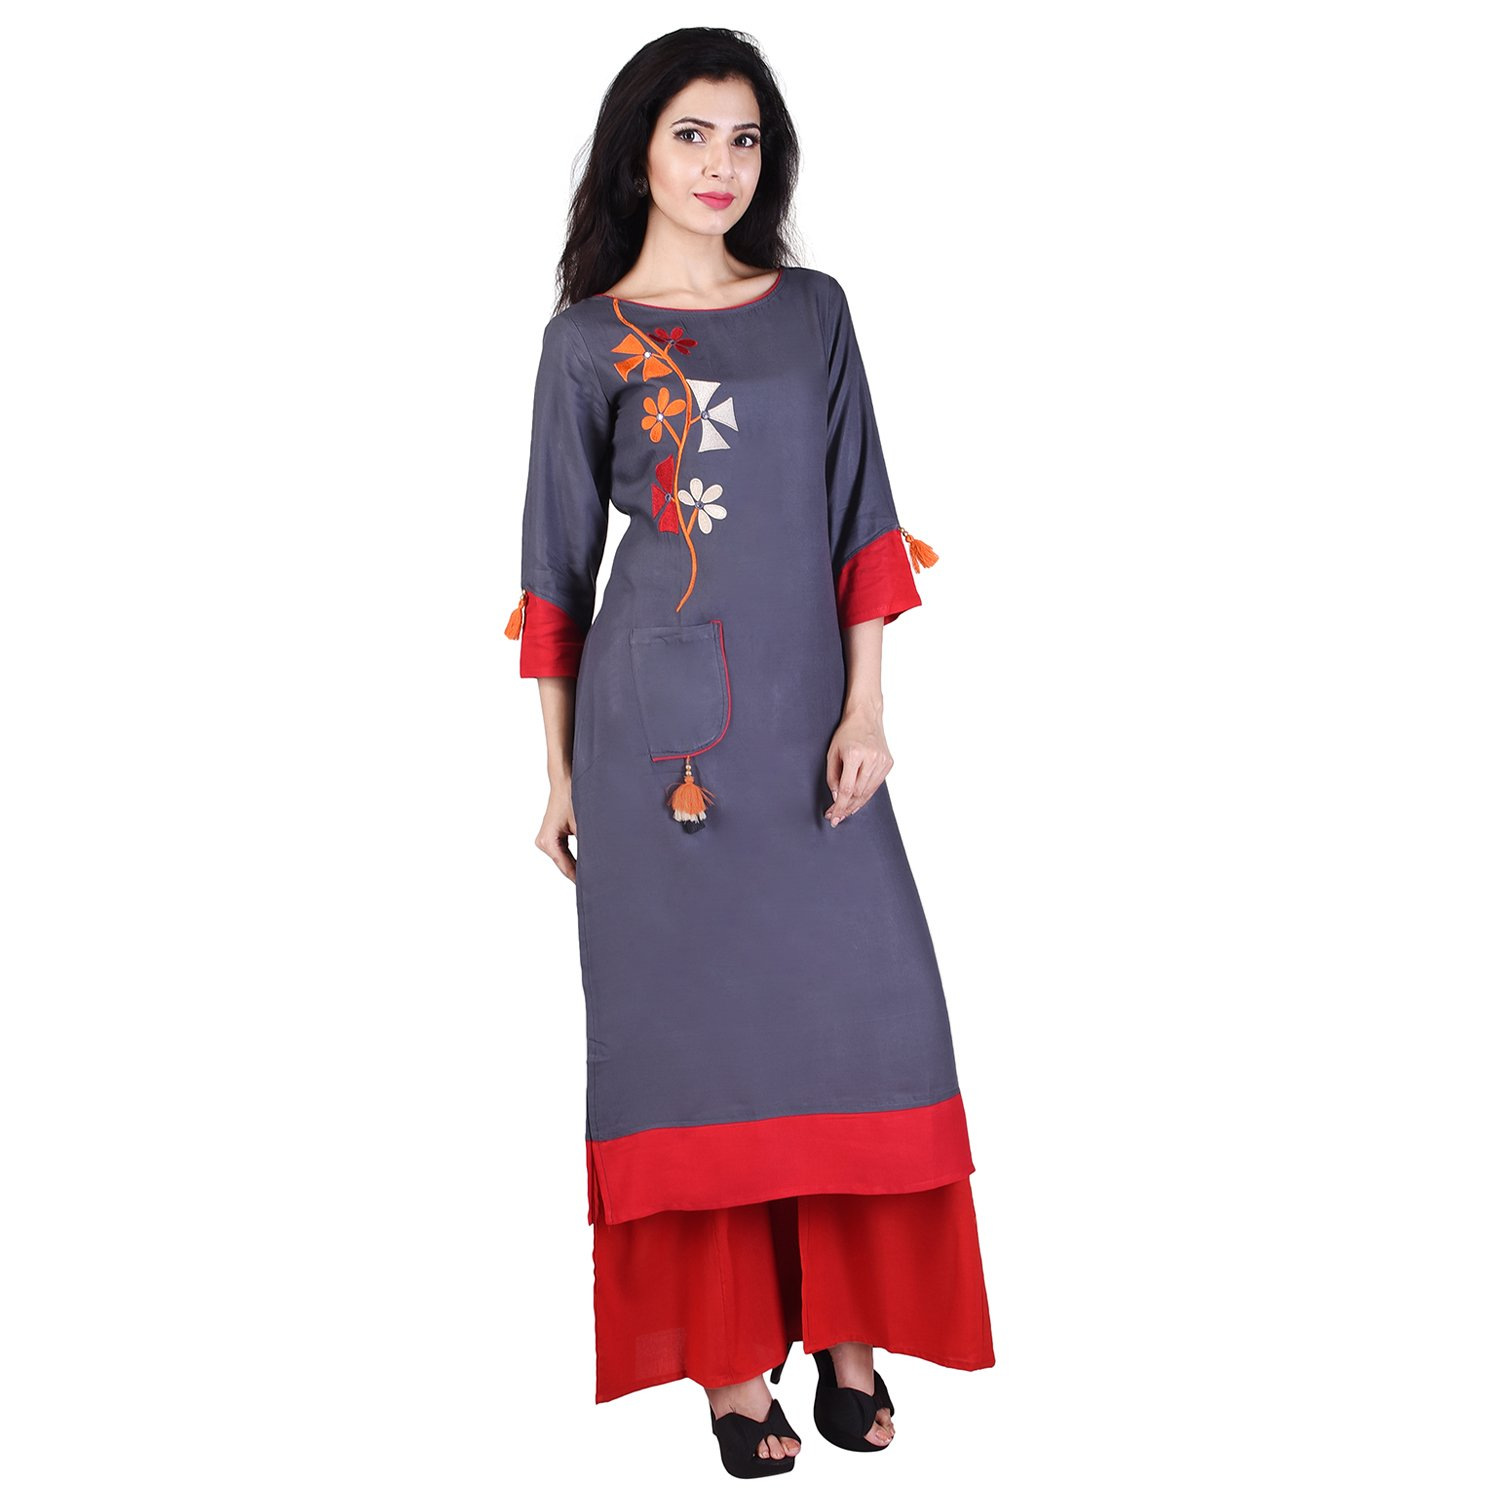 46871fcb718 Indiwest Women s Rayon Embroidered Kurta and Palazzo Set  Amazon.in   Clothing   Accessories